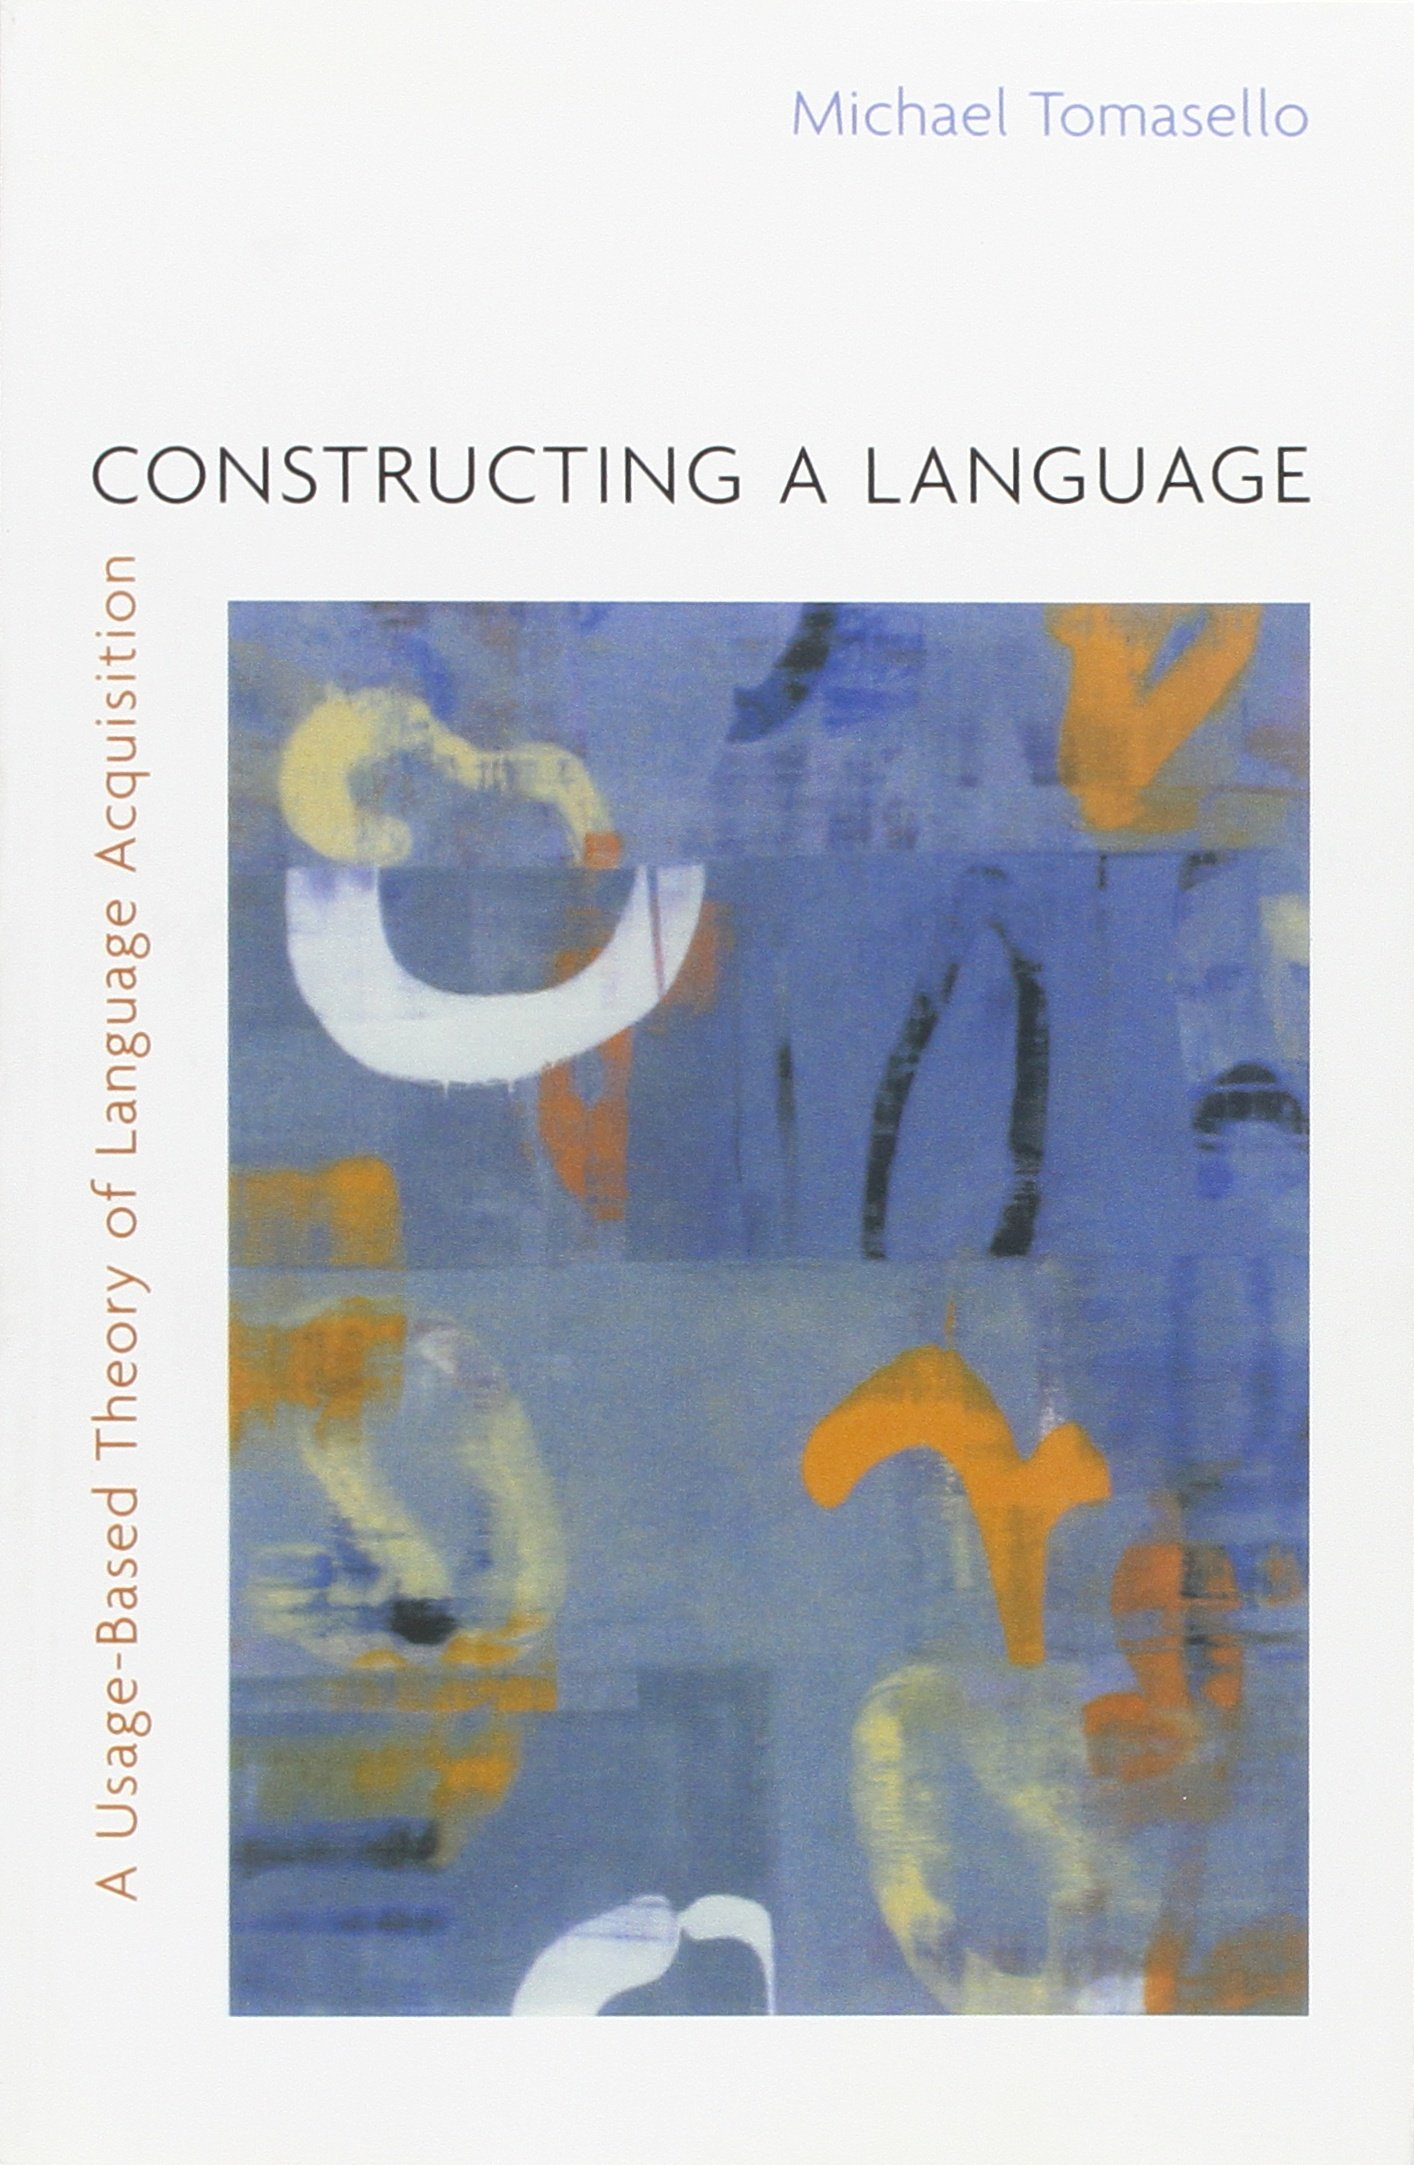 Constructing a Language: A Usage-Based Theory of Language Acquisition by imusti